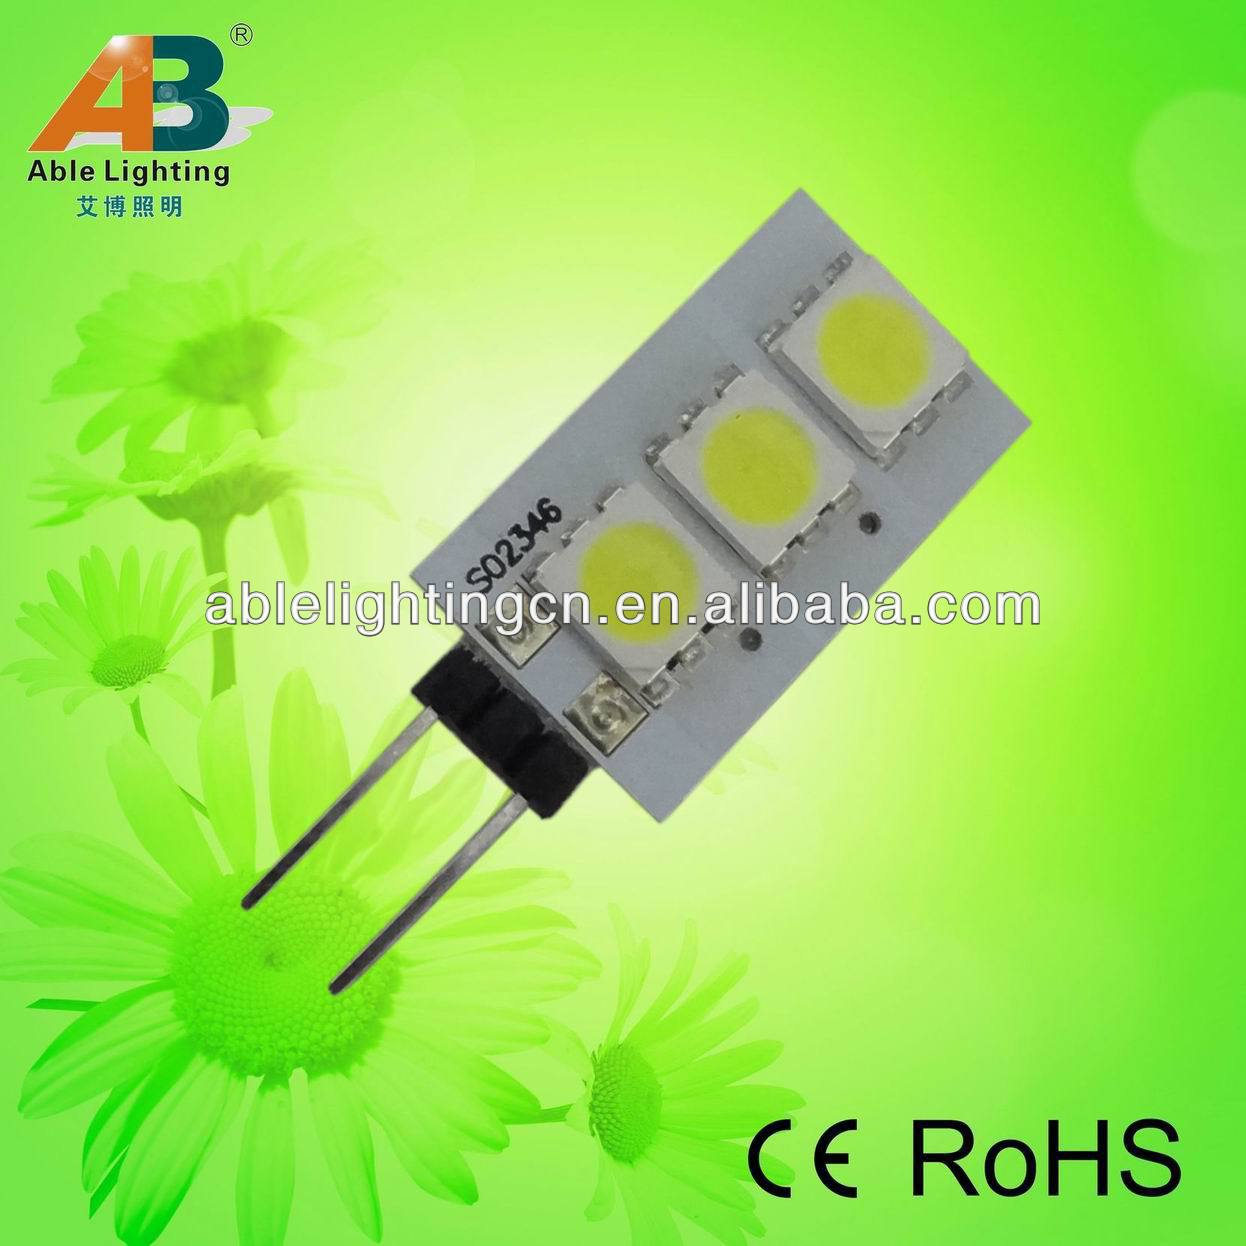 2013 New 12v 0.6w ce rohs led spolight 5050smd warm white bulb 50lm gu4